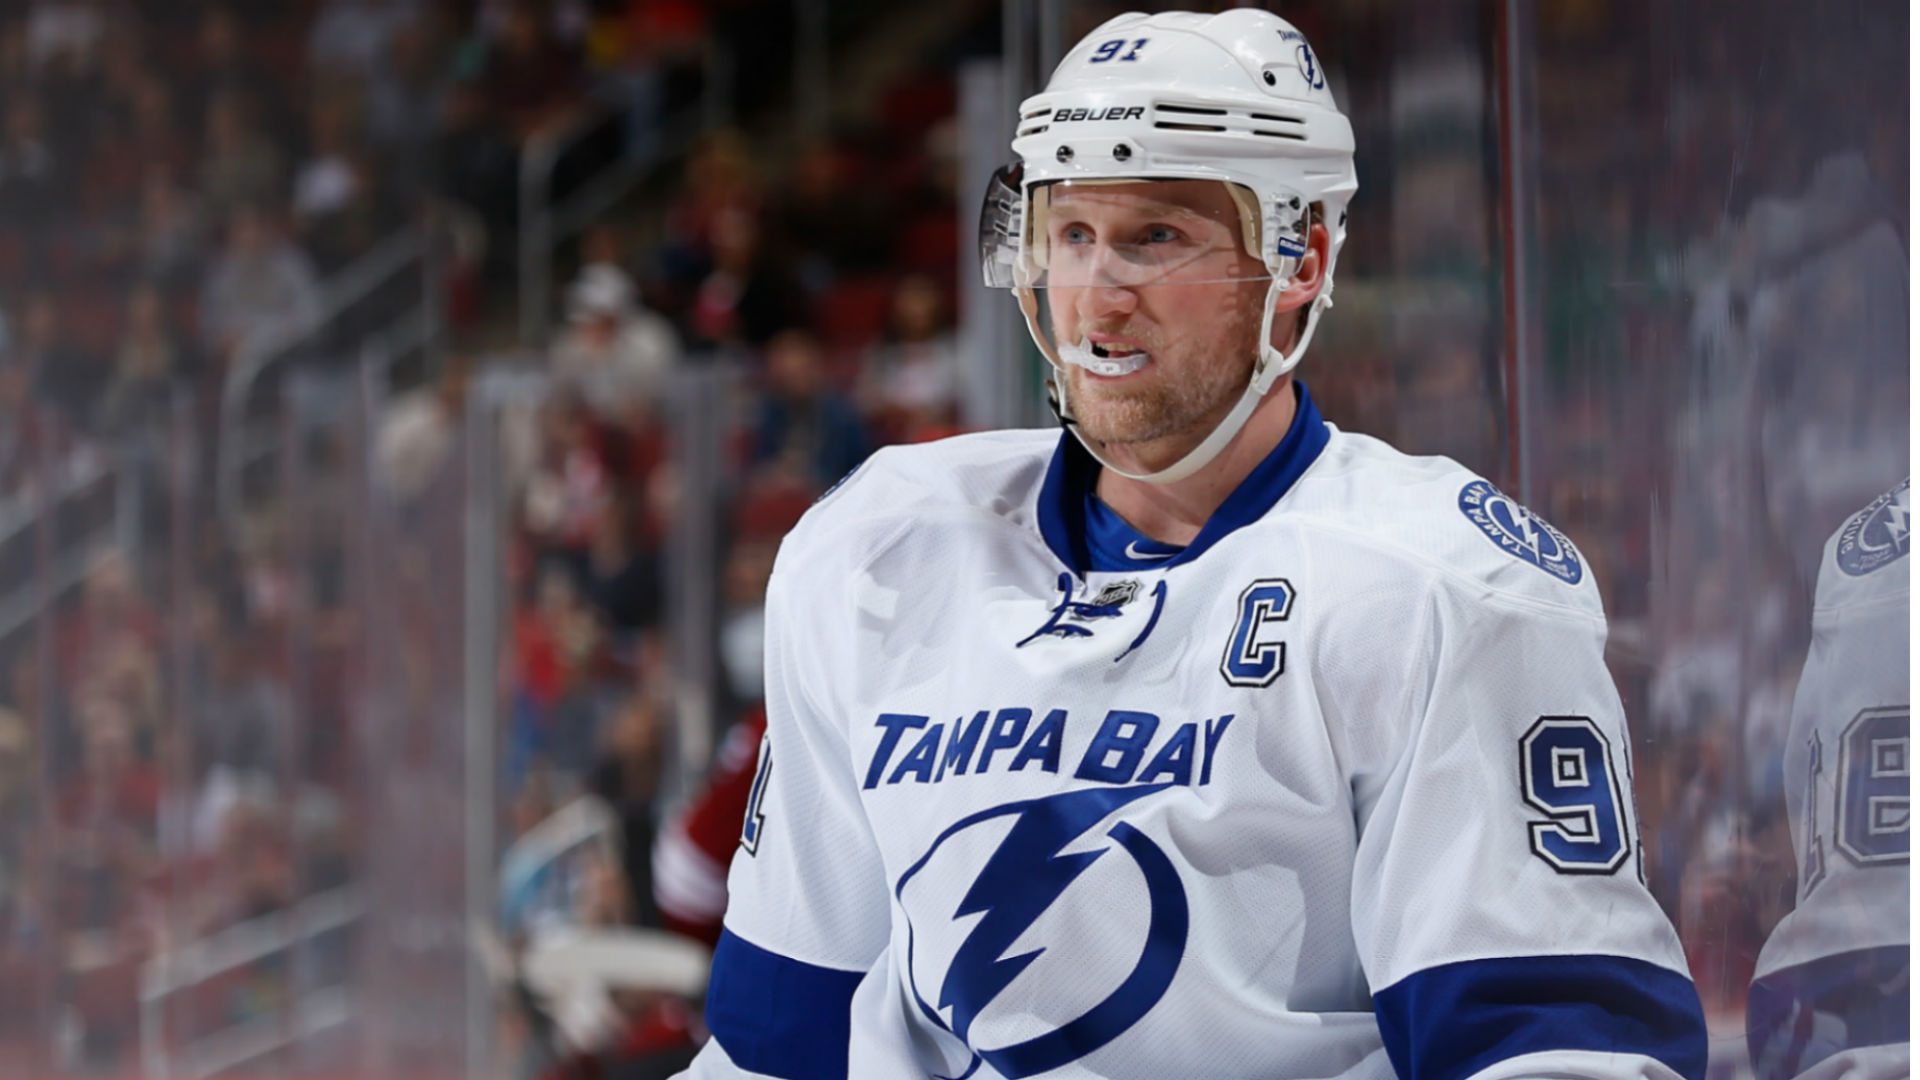 Lightnings Steven Stamkos Exits After Throwing Broken Stick Into Crowd